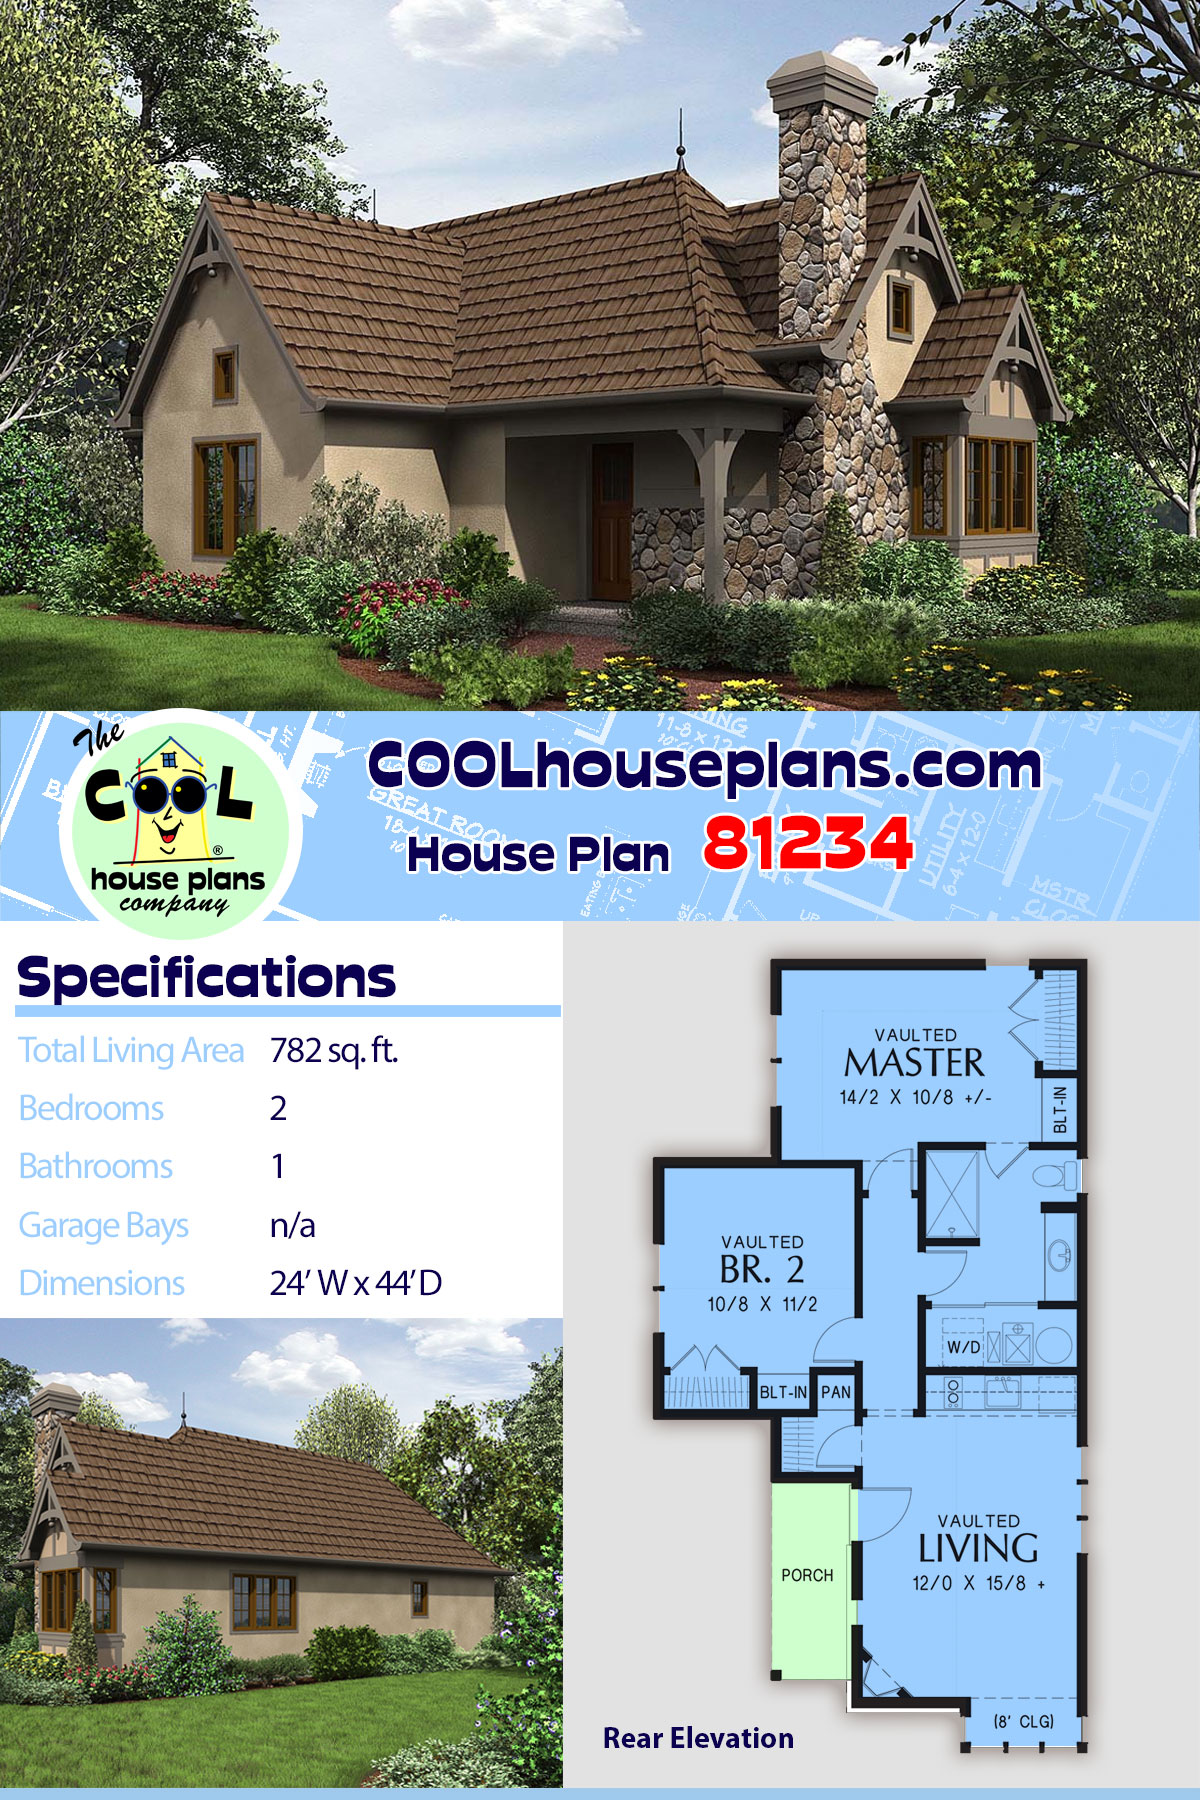 Cottage, French Country, Tudor 0 Car Garage Plan 81234 with 2 Beds, 1 Baths